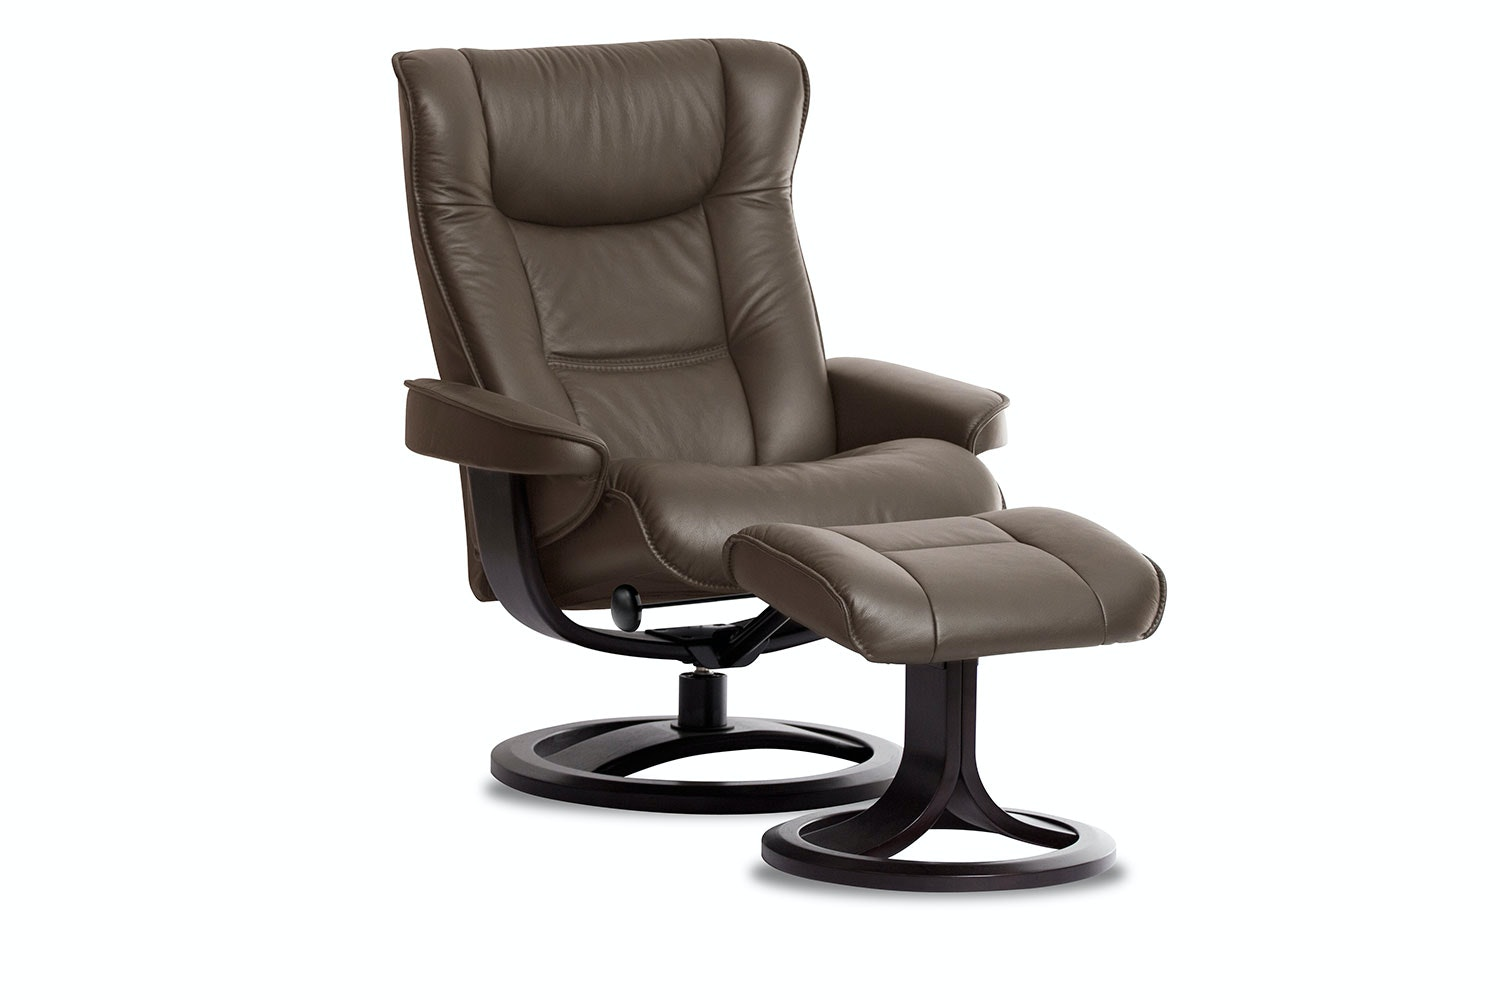 Brage Leather Recliner and Footstool - Large - Trend - IMG